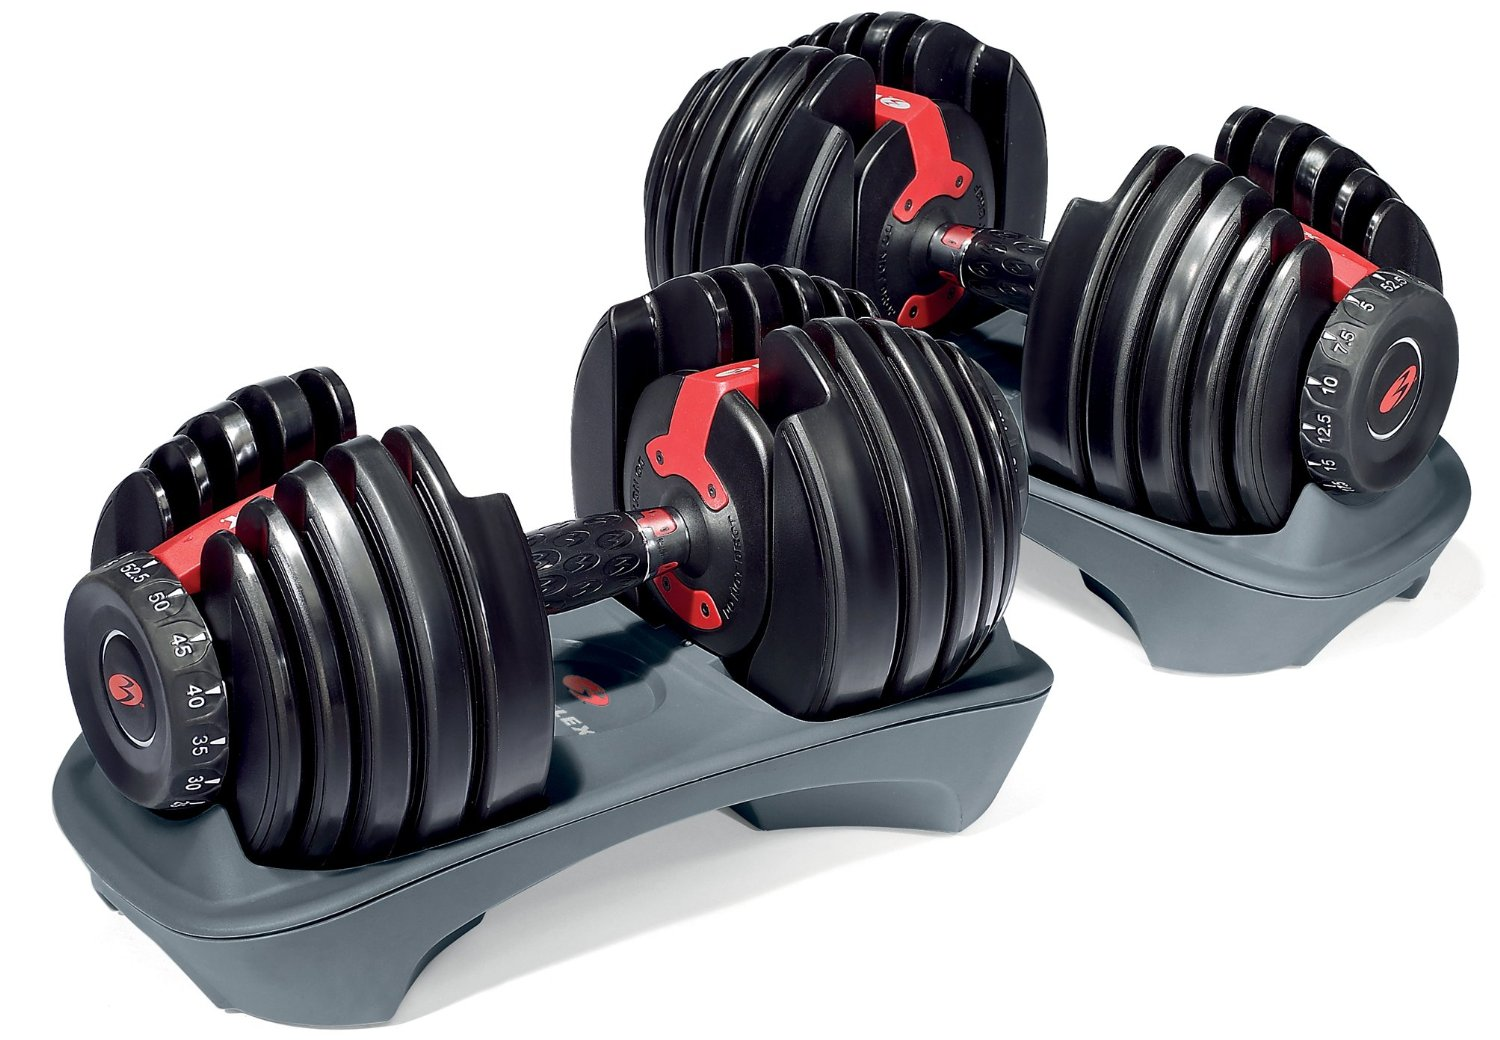 These [adjustable dumbbells](http://www.amazon.com/gp/product/B001ARYU58/ref=as_li_tl?ie=UTF8&camp=1789&creative=390957&creativeASIN=B001ARYU58&linkCode=as2&tag=toolsandtoys-20&linkId=KYSS2NNC2PFVIIZ4) are on a huge sale right now.